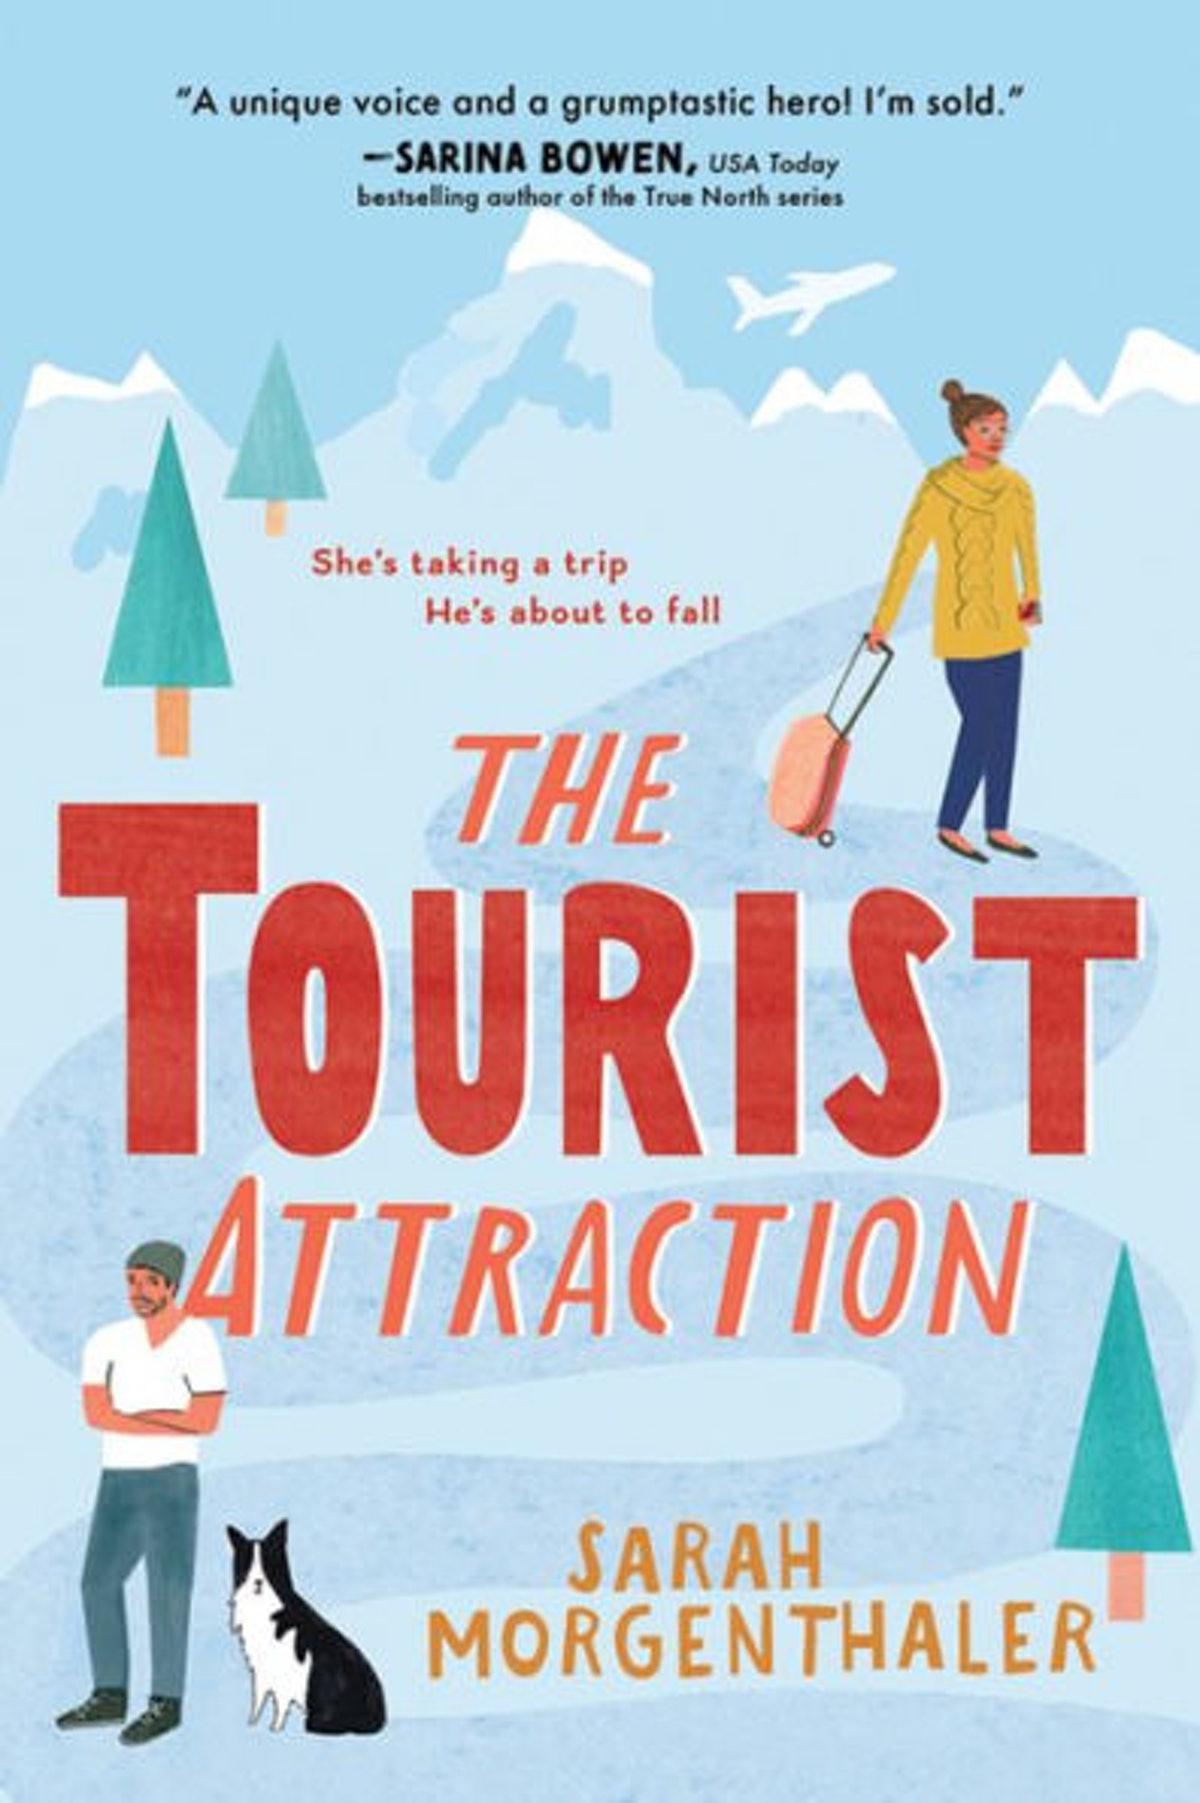 'The Tourist Attraction' by Sarah Morgenthaler